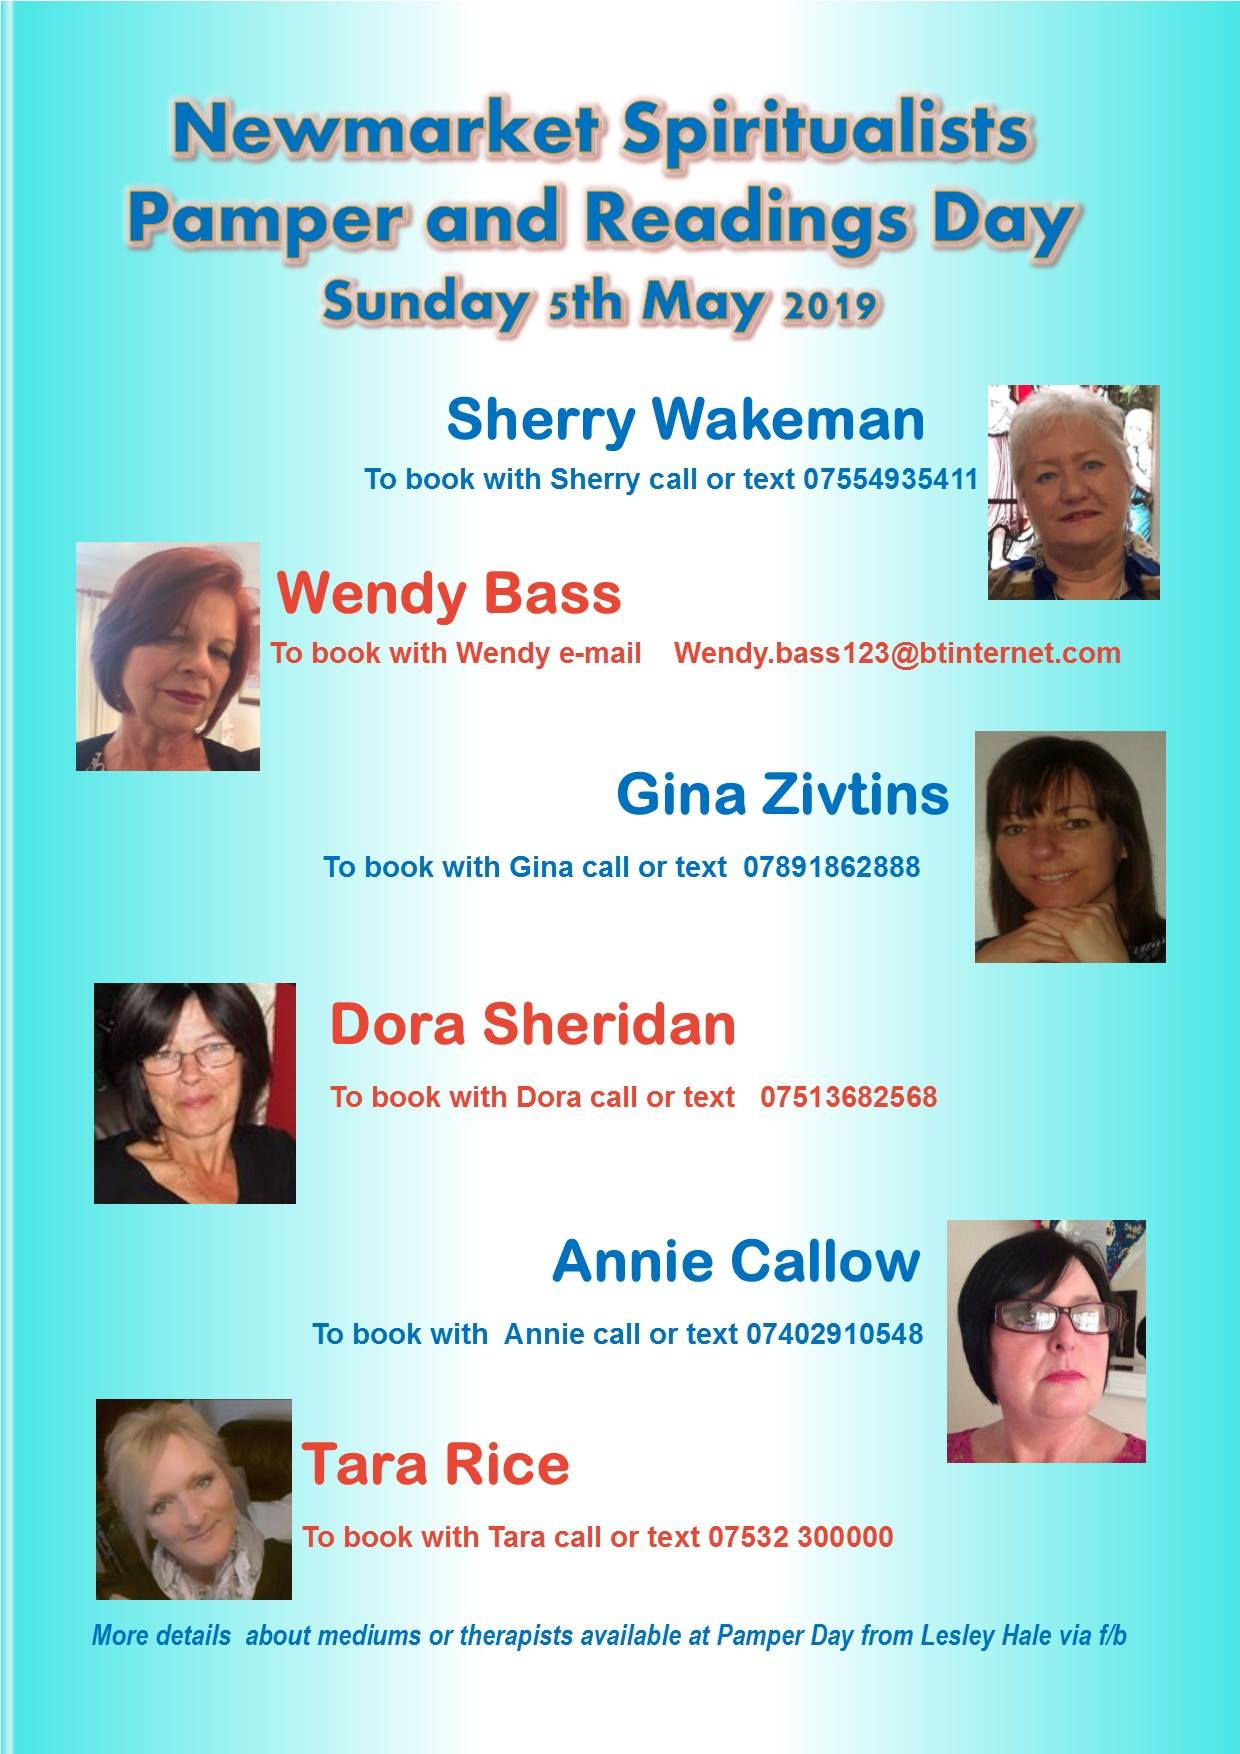 Flyer showing Pamper Day Reader's Contact Details: Sherry Wakeman: 07554 935411 Wendy Bass: email wendy.bass123@btinternet.com Gina Zivtins: 07891 862888 Dora Sheridan: 07513 682568 Annie Callow: 07402 910548 Tara Rice: 77532 300000